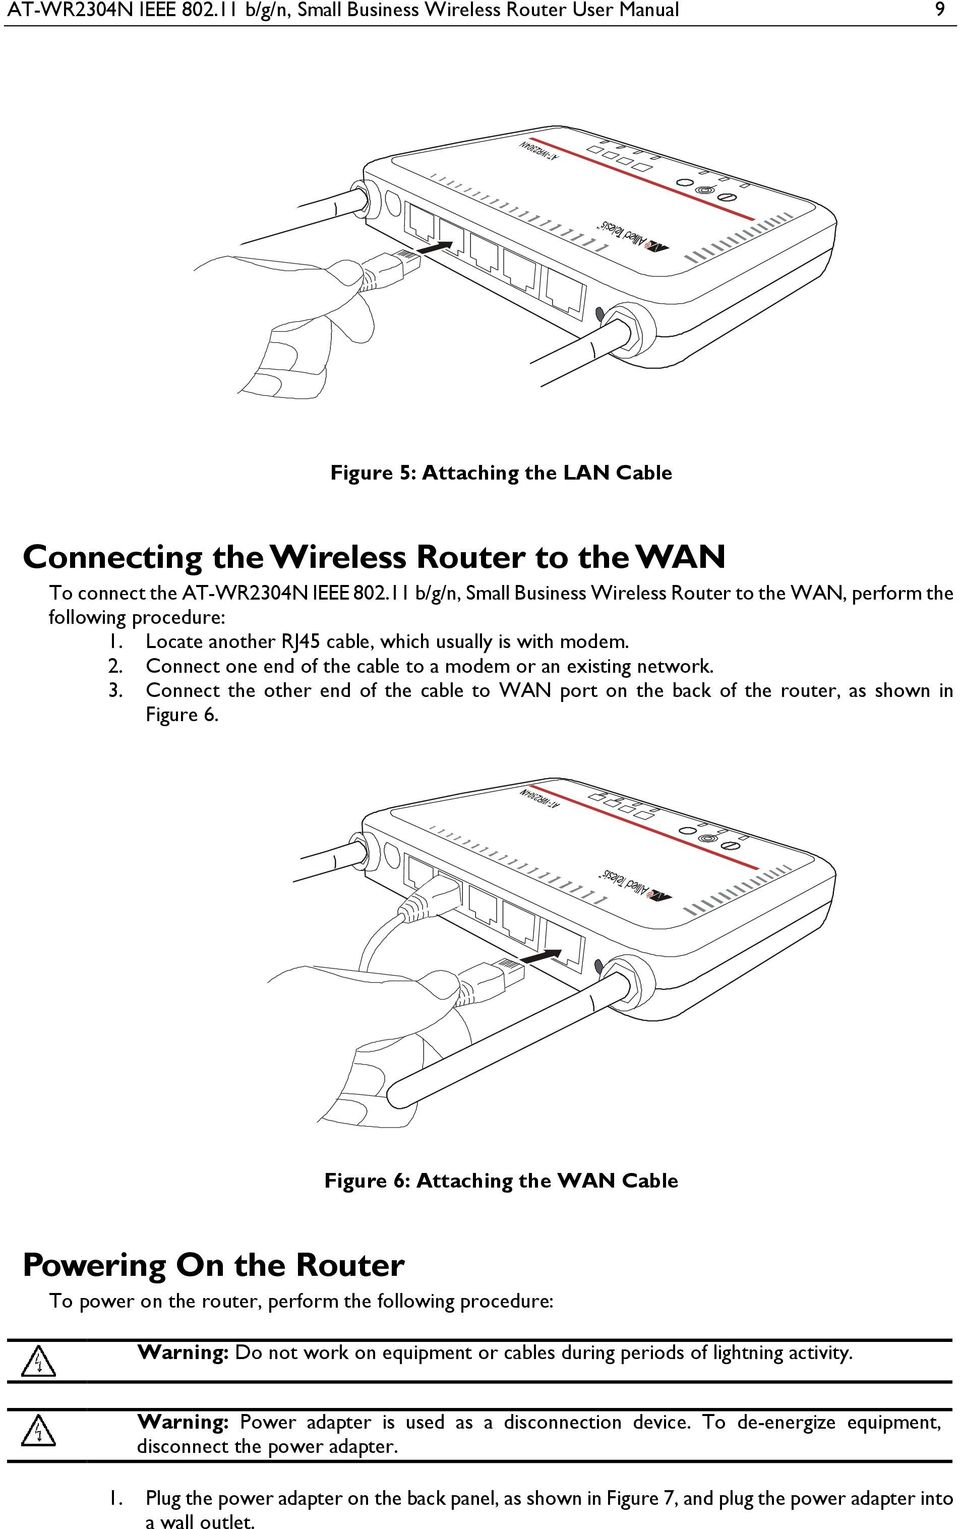 Connect one end of the cable to a modem or an existing network. 3. Connect the other end of the cable to WAN port on the back of the router, as shown in Figure 6.